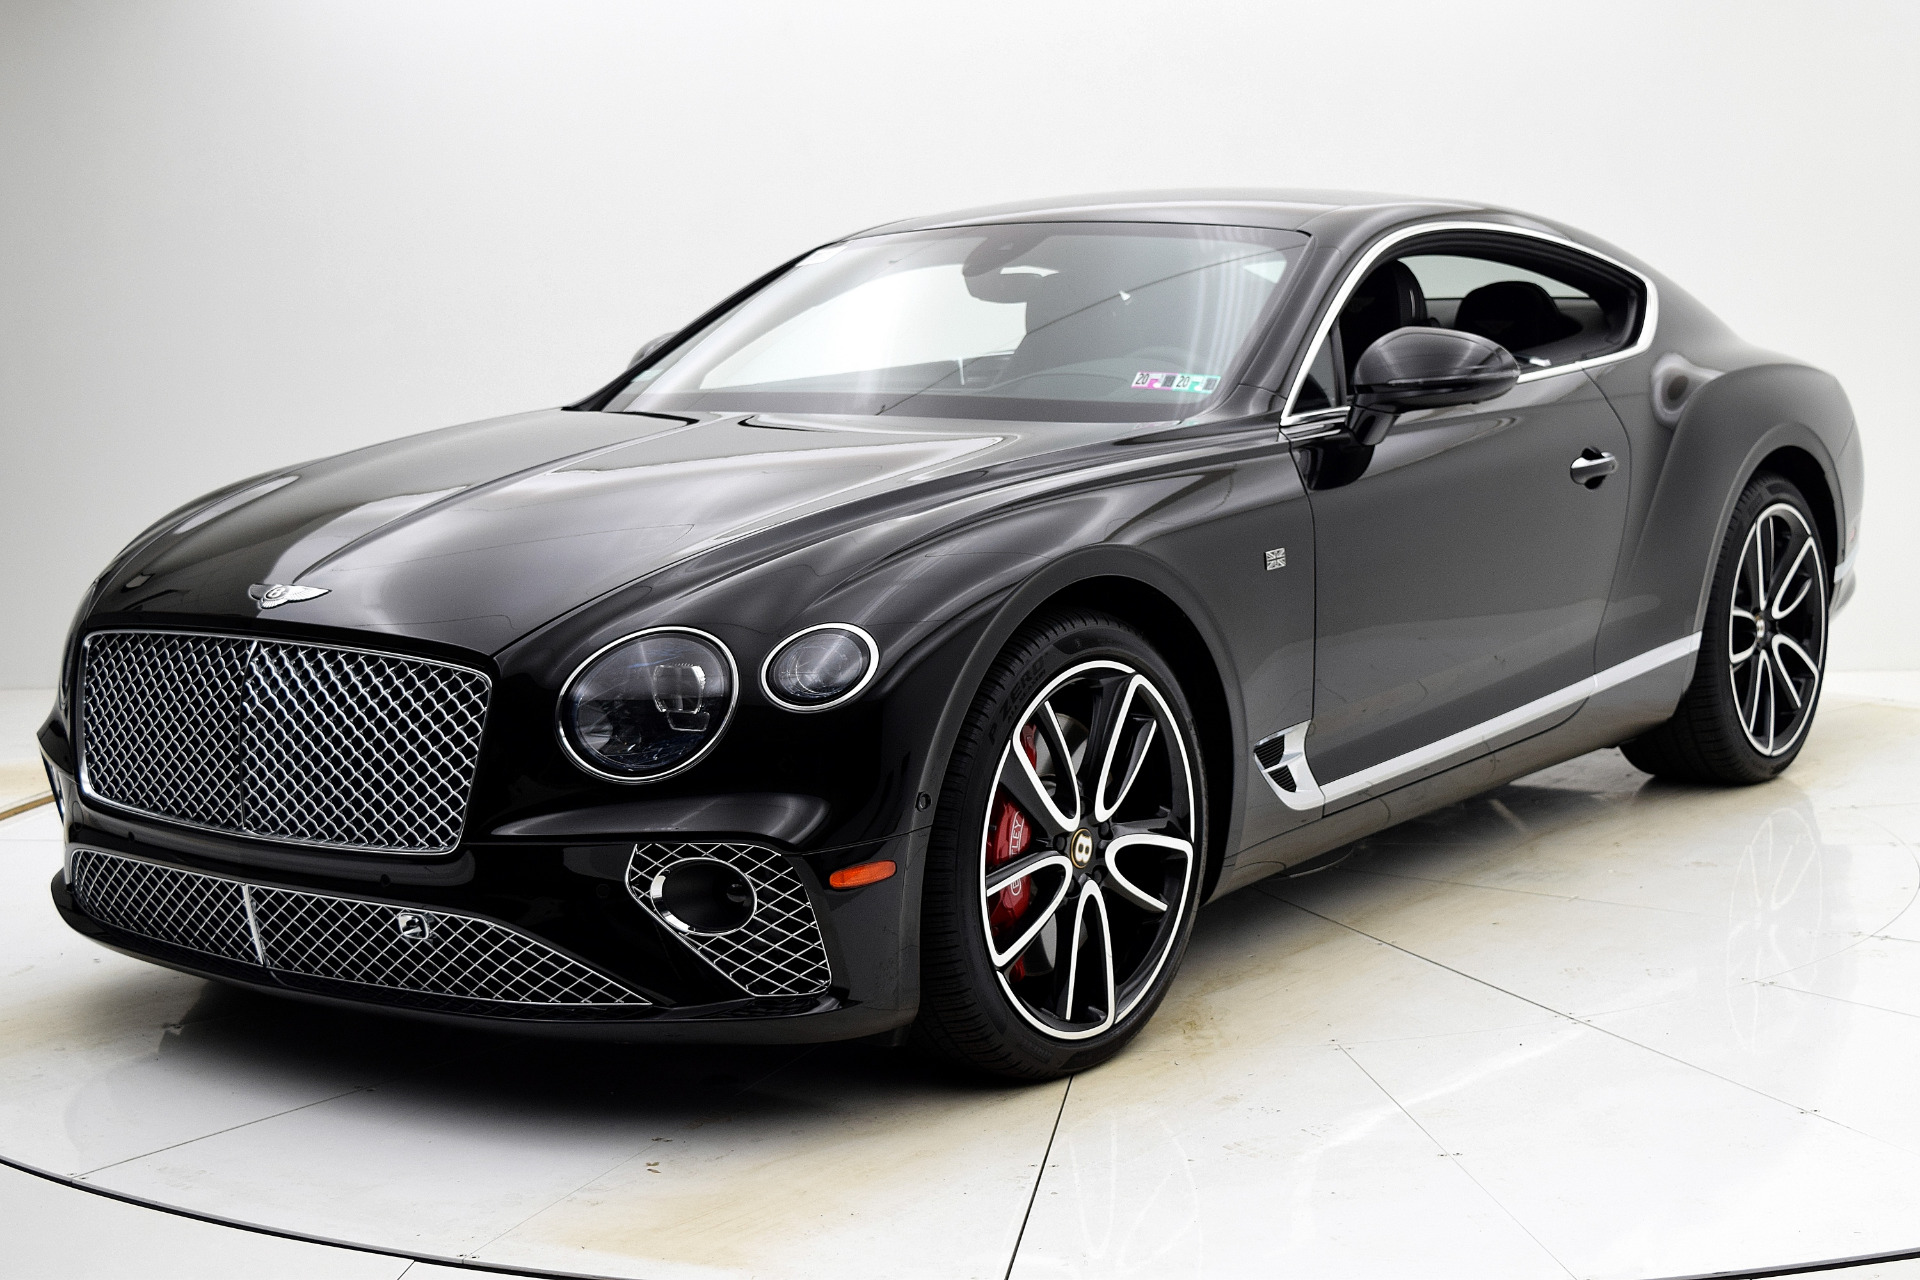 Used 2020 Bentley Continental GT First Edition for sale $229,880 at F.C. Kerbeck Aston Martin in Palmyra NJ 08065 2